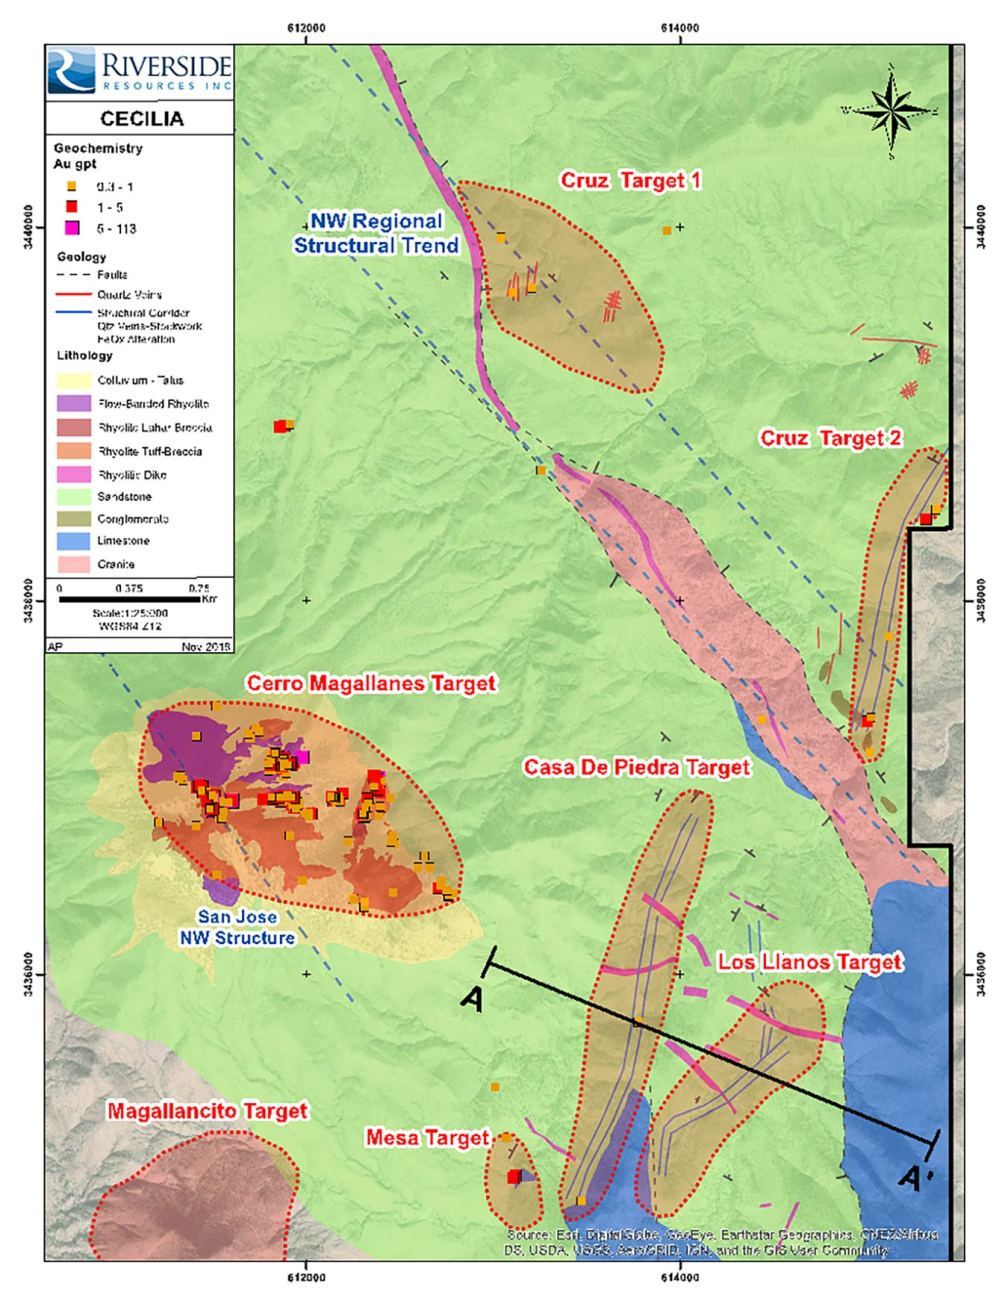 This image shows the geological mapping and gold values of the target areas and puts in context the new target areas locations in comparison to Cerro Magallanes.